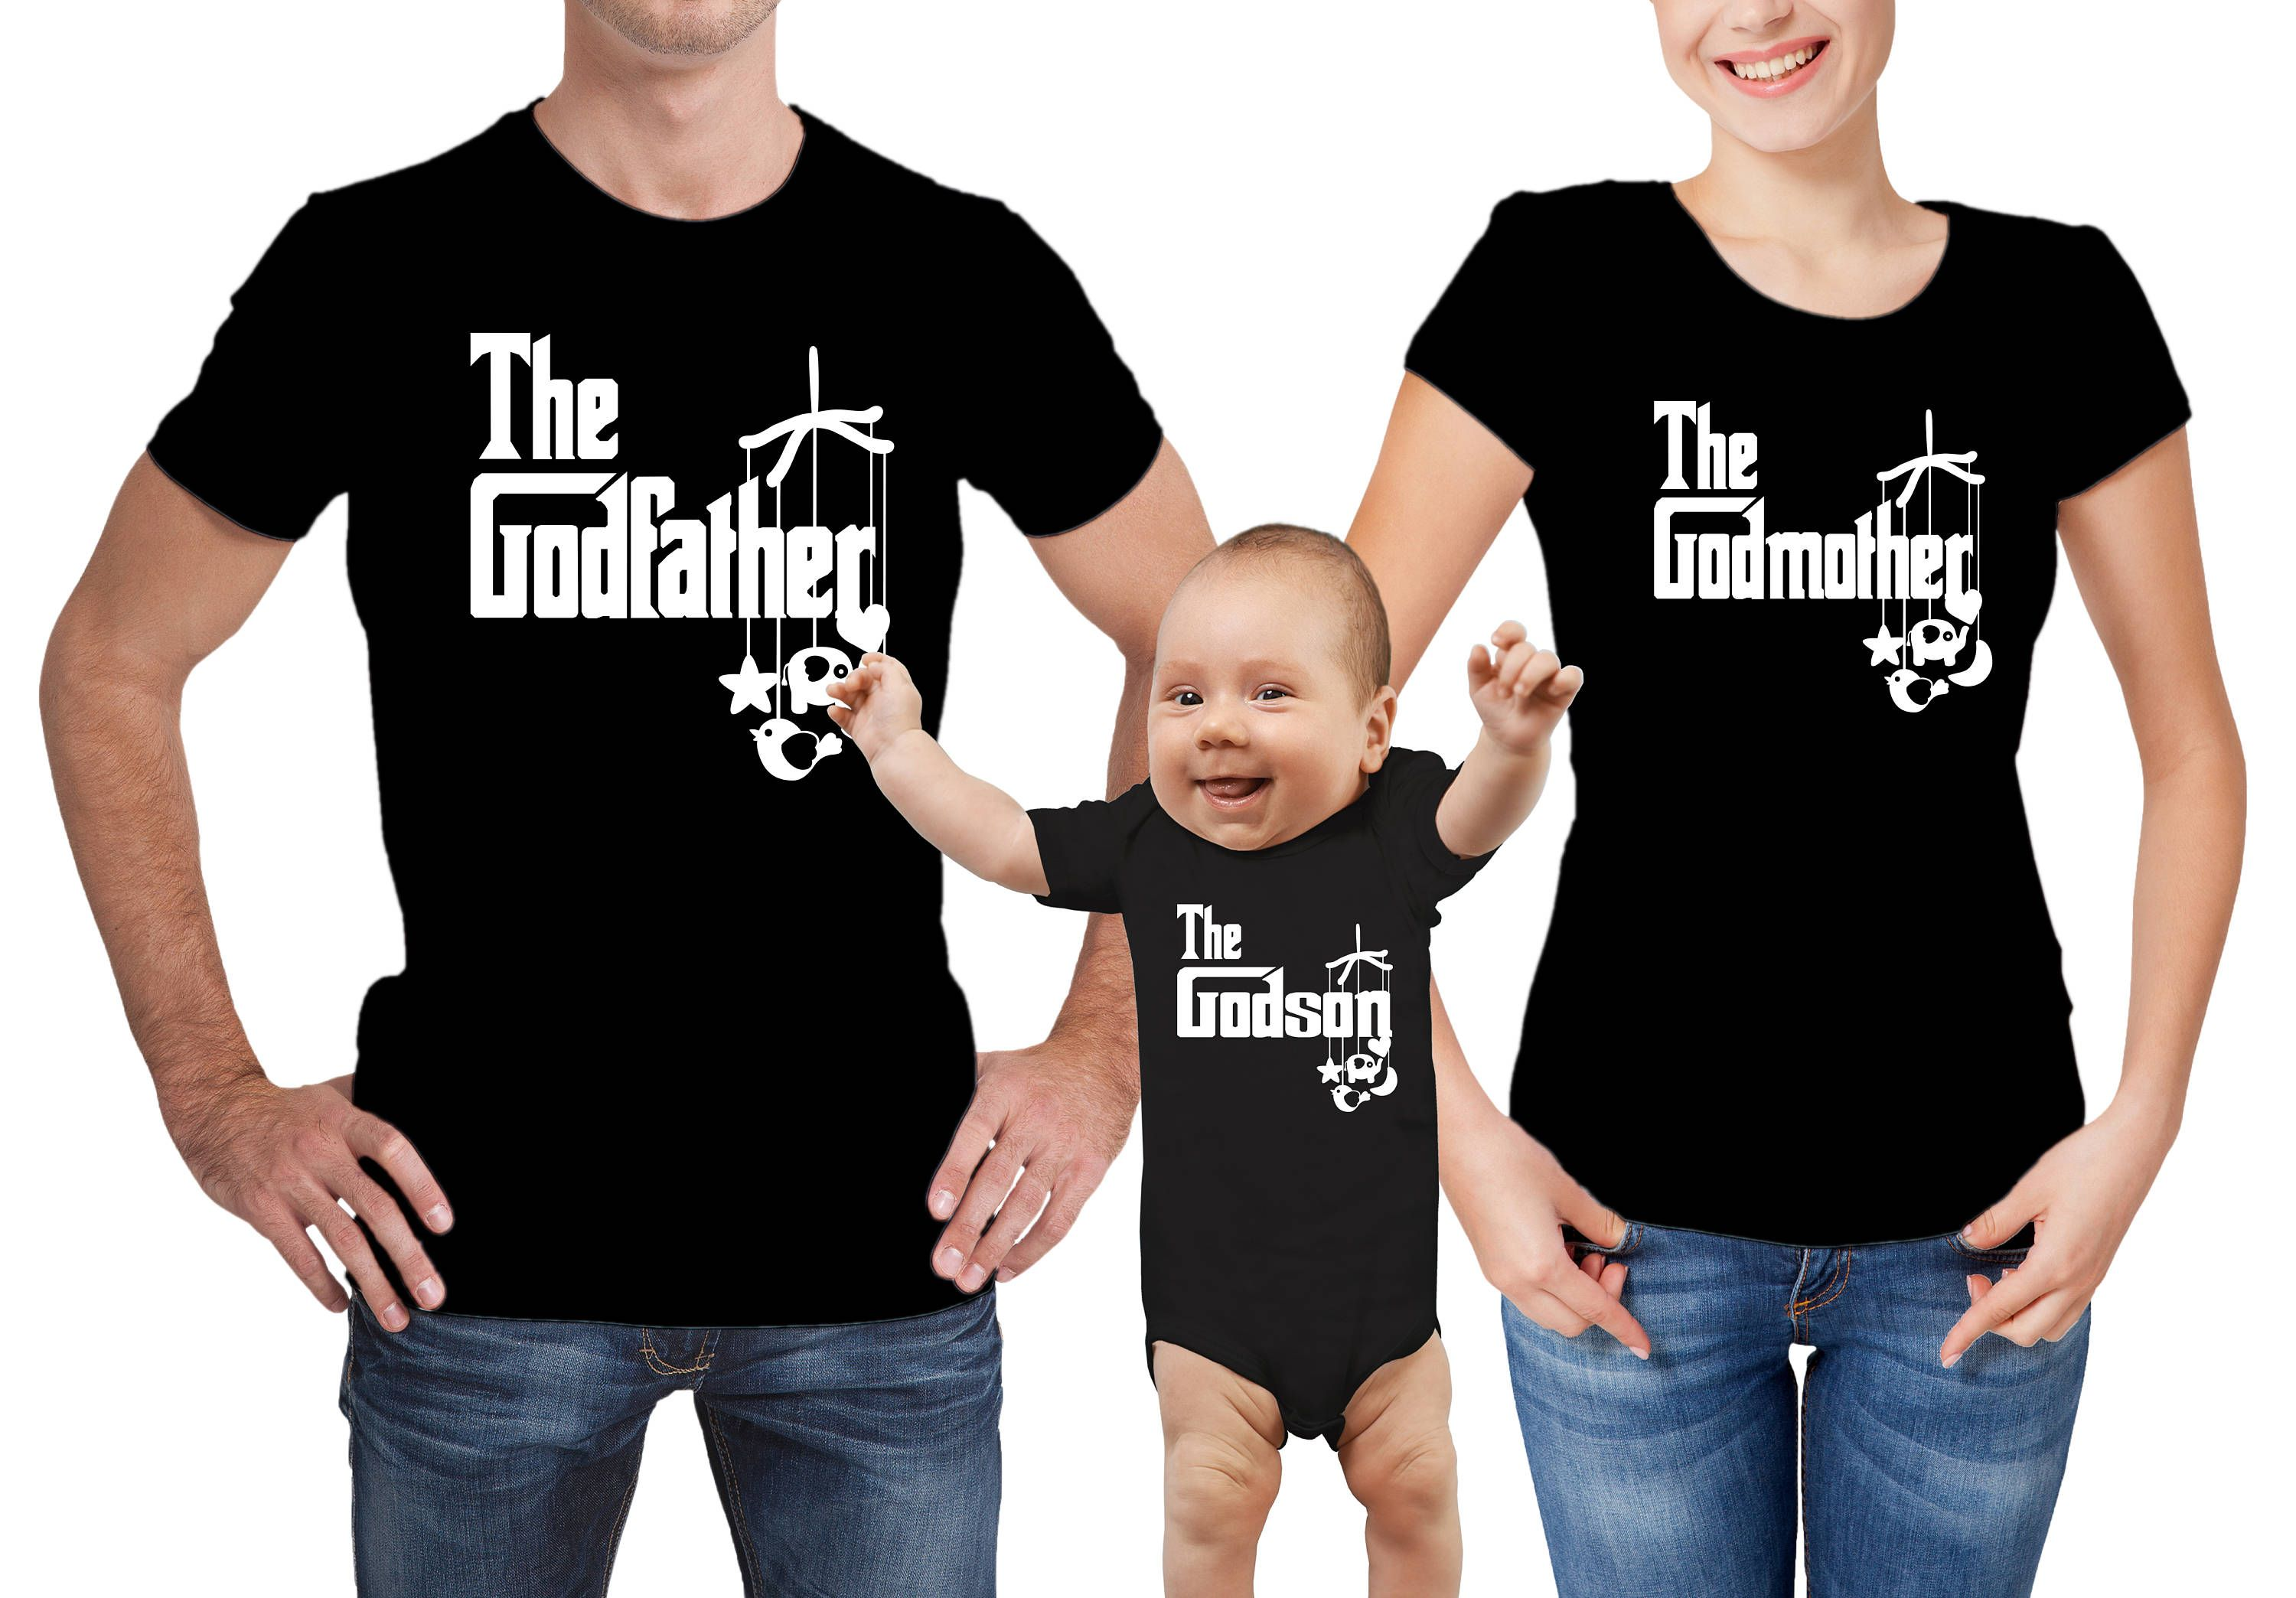 Godfather Godmother Godson Tees Wx46OZ8r